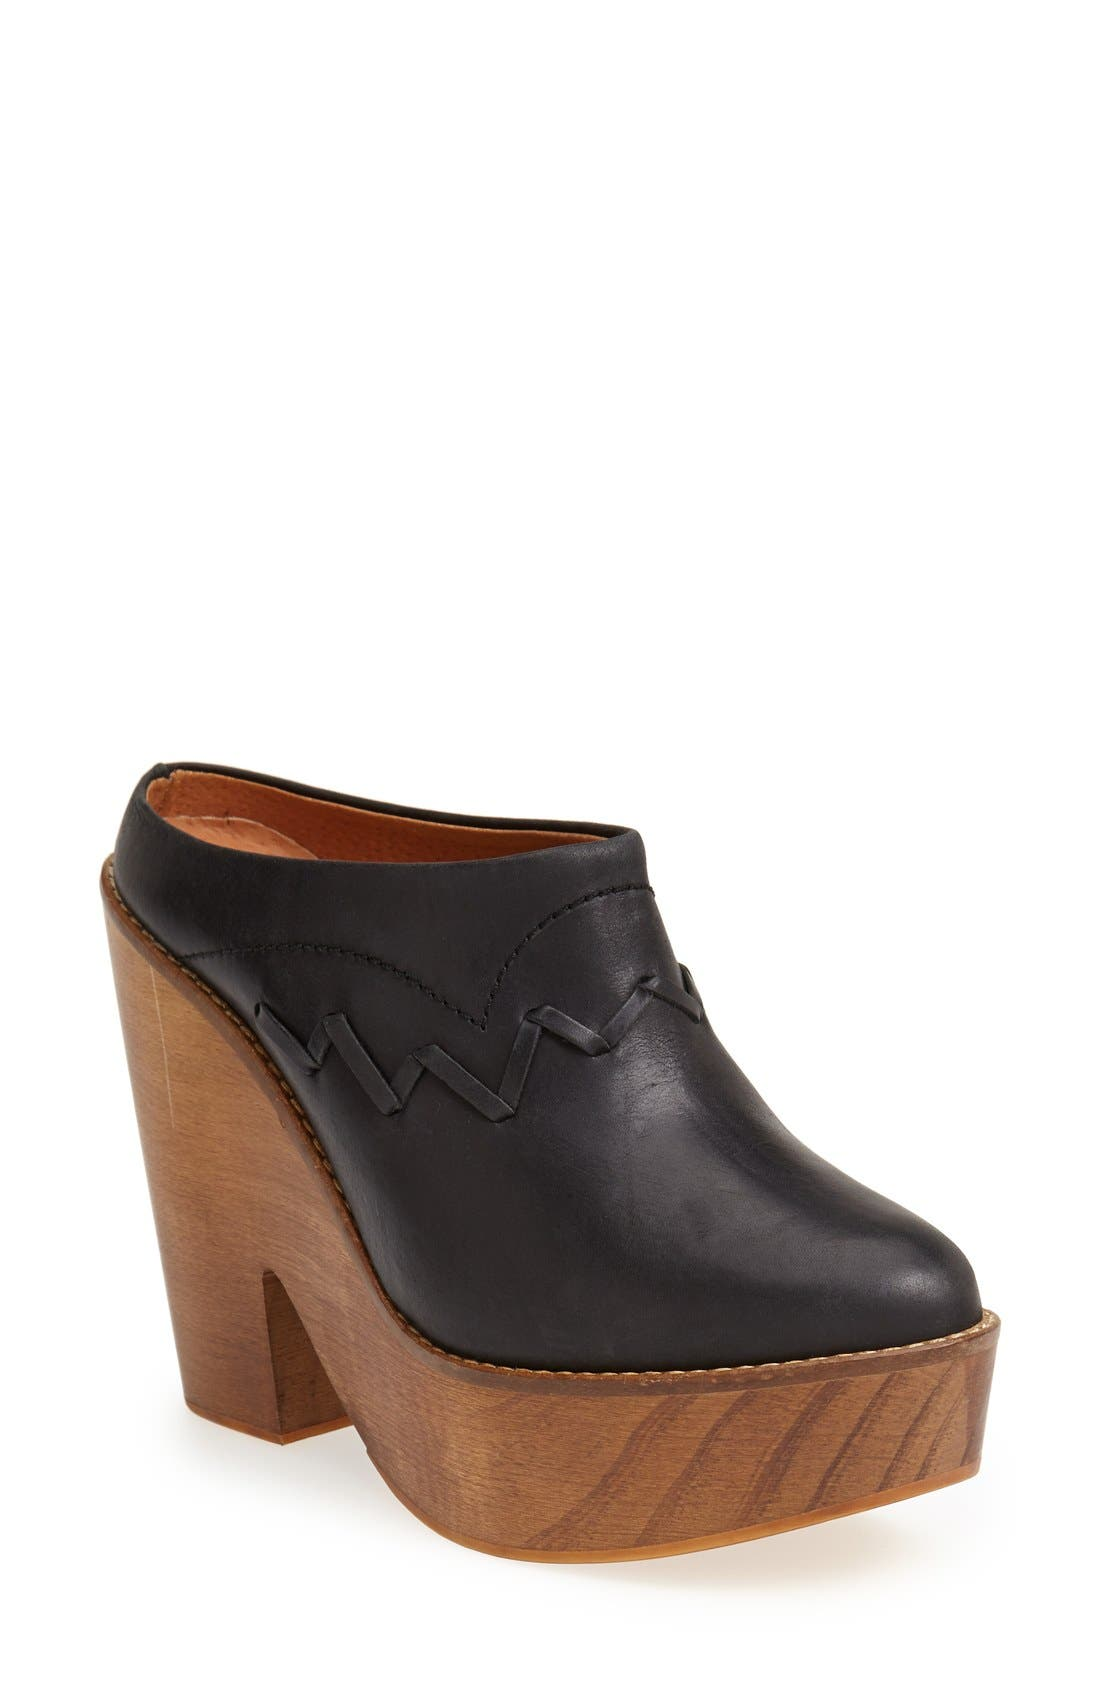 Alternate Image 1 Selected - Free People 'Chance' Platform Clog (Women)